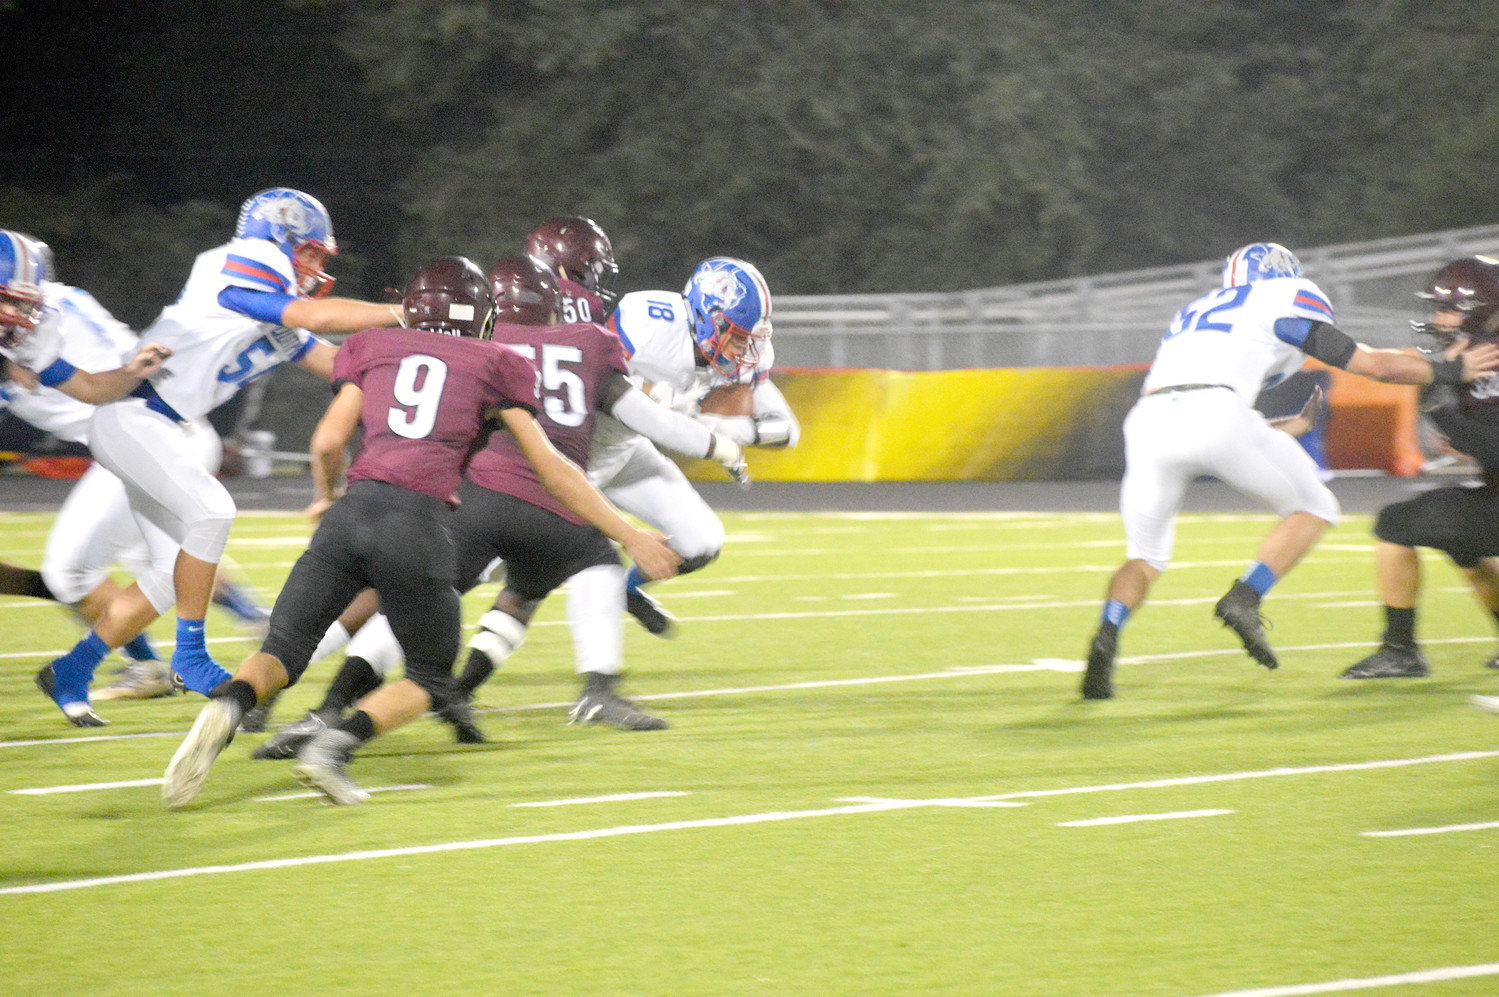 Dylan Coe gains some tough yardage in Friday's game at Arp.